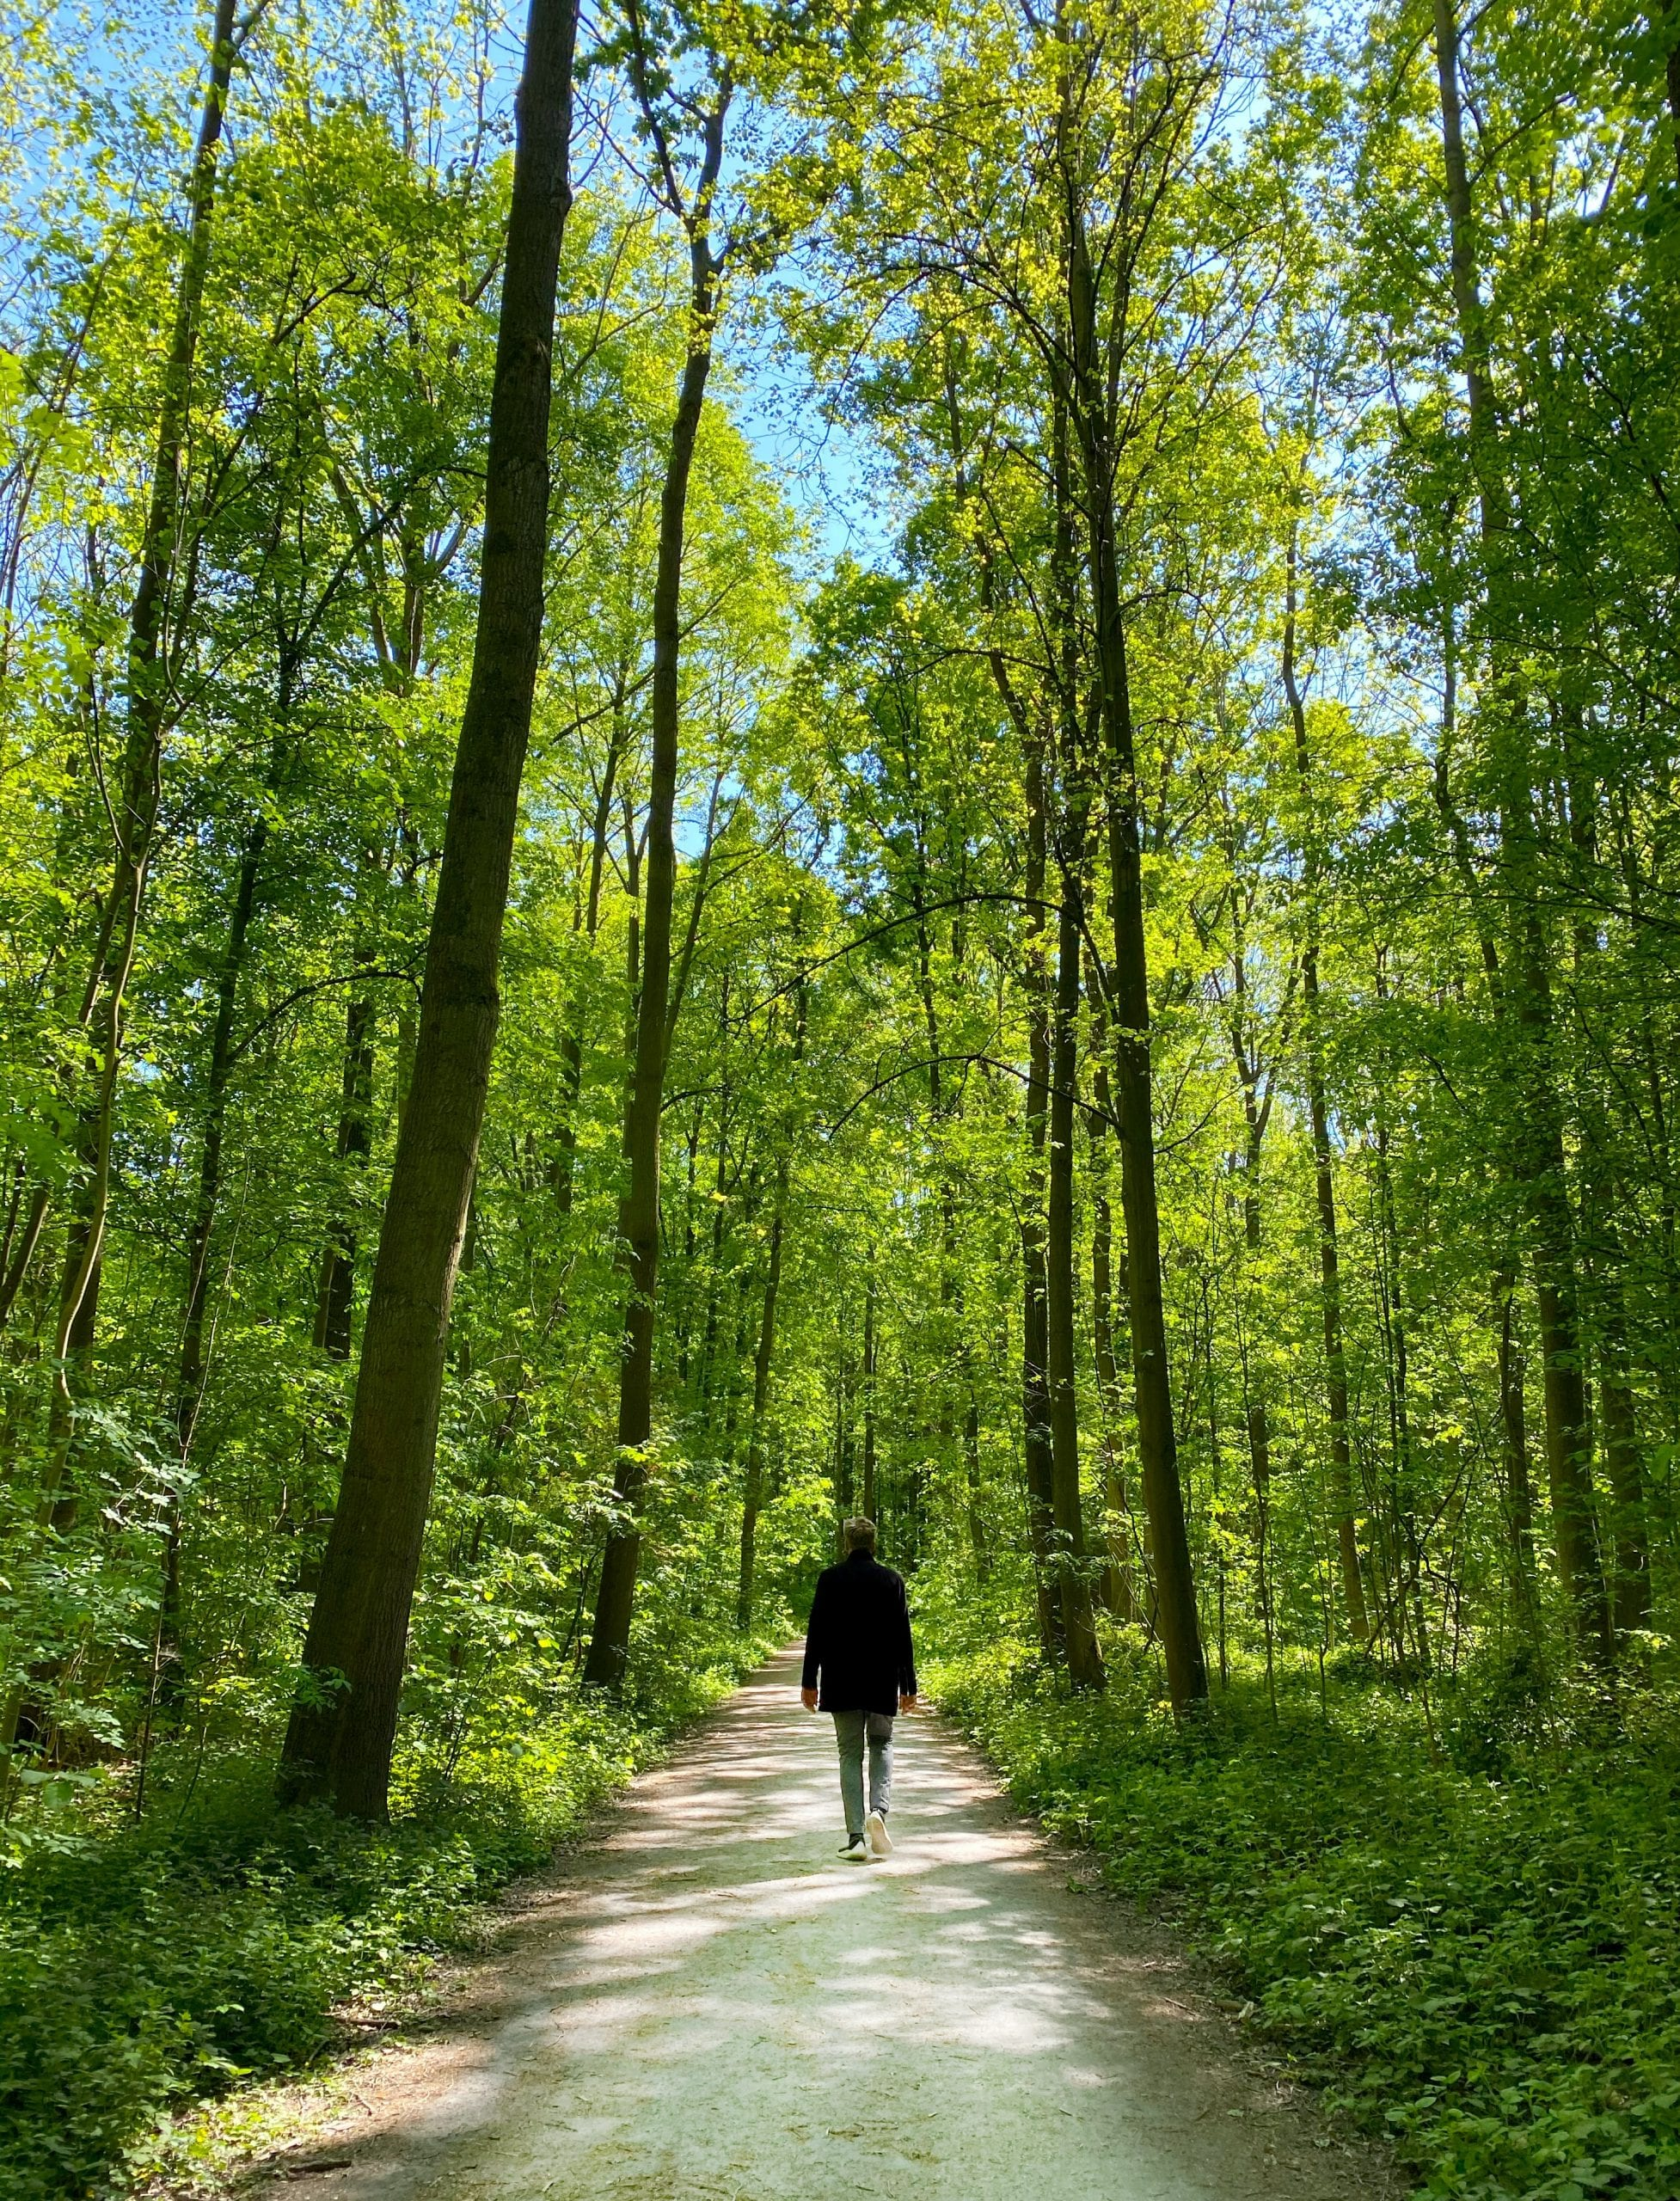 alive-counselling-walk-and-talk-therapy-outside-blue-skies-green-trees-path-scaled.jpg